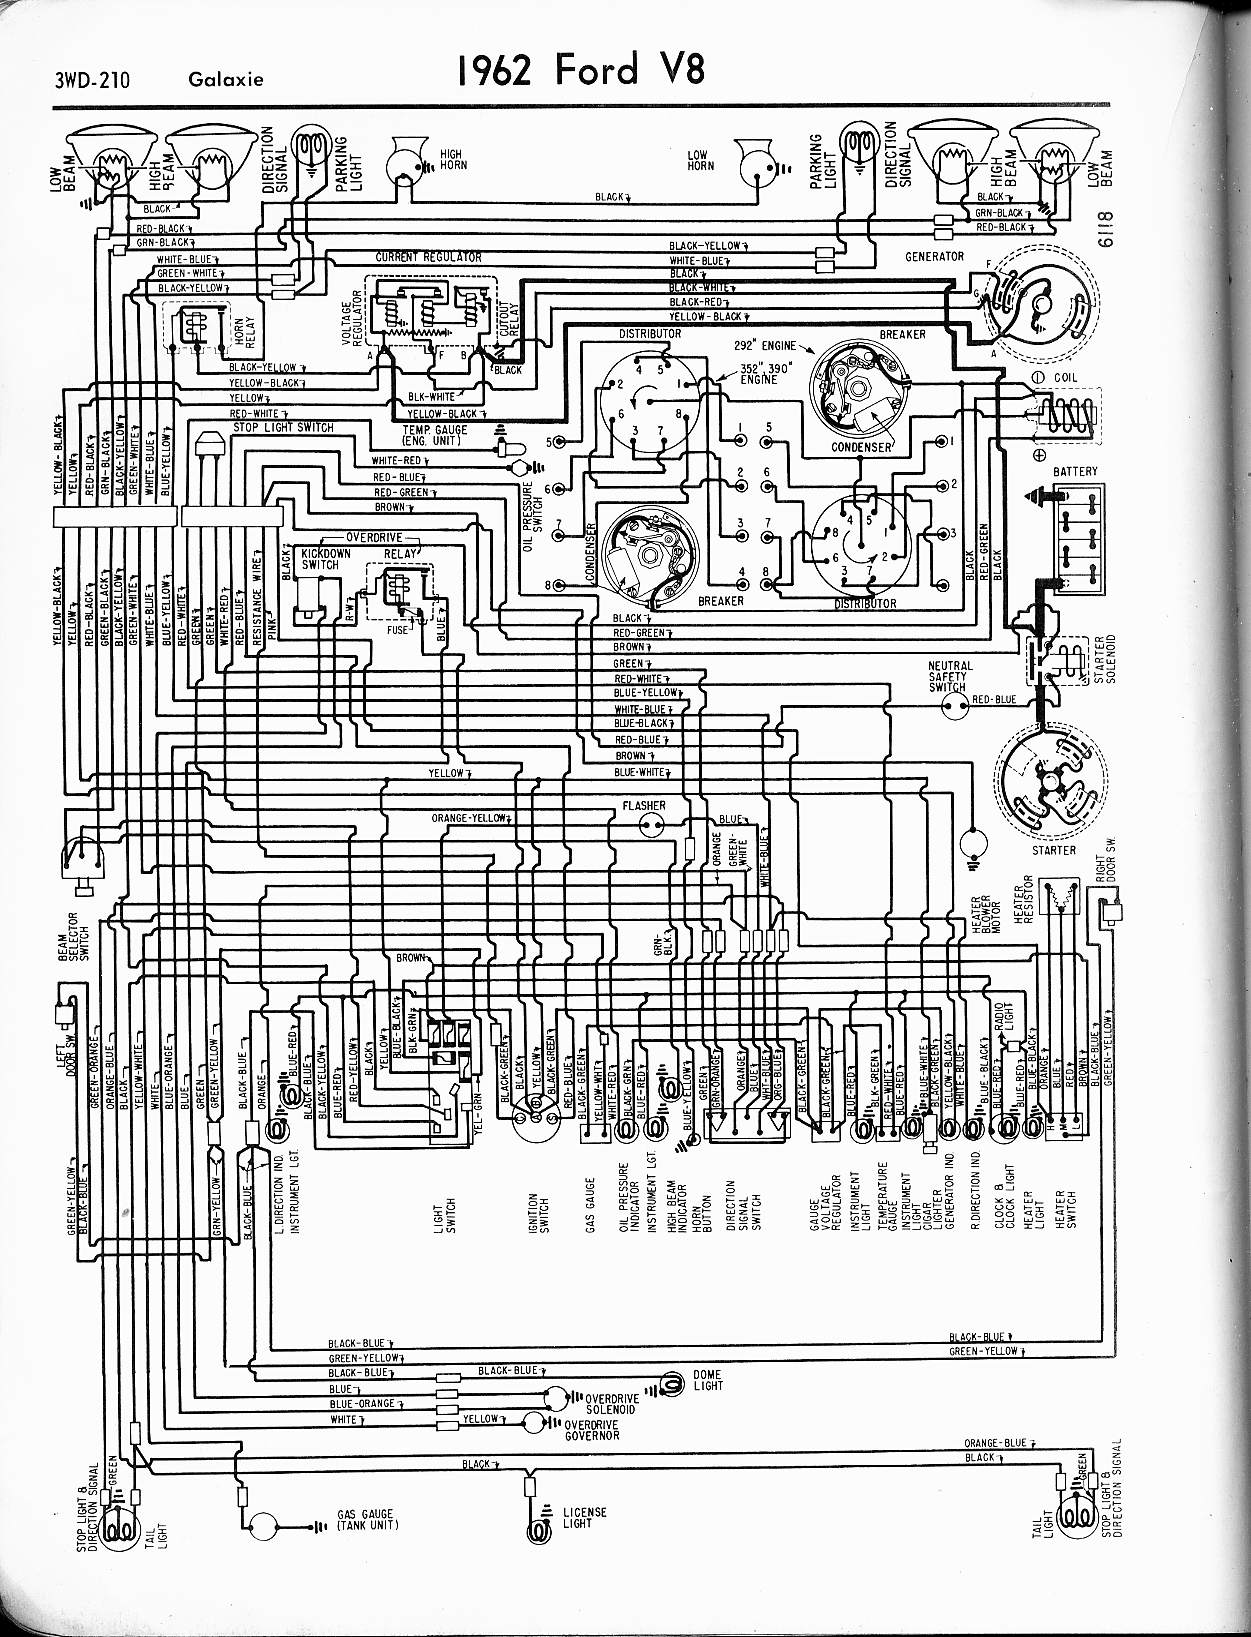 1968 Ford Fairlane Wiring Diagram | Manual e-books Ford Fairlane Wiring Diagram on ford aerostar wiring diagram, ford f-250 super duty wiring diagram, 1937 ford wiring diagram, ford 500 wiring diagram, ford f500 wiring diagram, ford fairlane rear suspension, 1963 ford wiring diagram, 1964 ford truck wiring diagram, ford fairlane fuel tank, ford truck wiring schematics, ford granada wiring diagram, ford econoline van wiring diagram, ford fairlane exhaust, ford fairlane radio, ford electrical wiring diagrams, ford fairlane specifications, ford fairlane body, ford thunderbird wiring diagram, 1965 ford truck wiring diagram, ford flex wiring diagram,